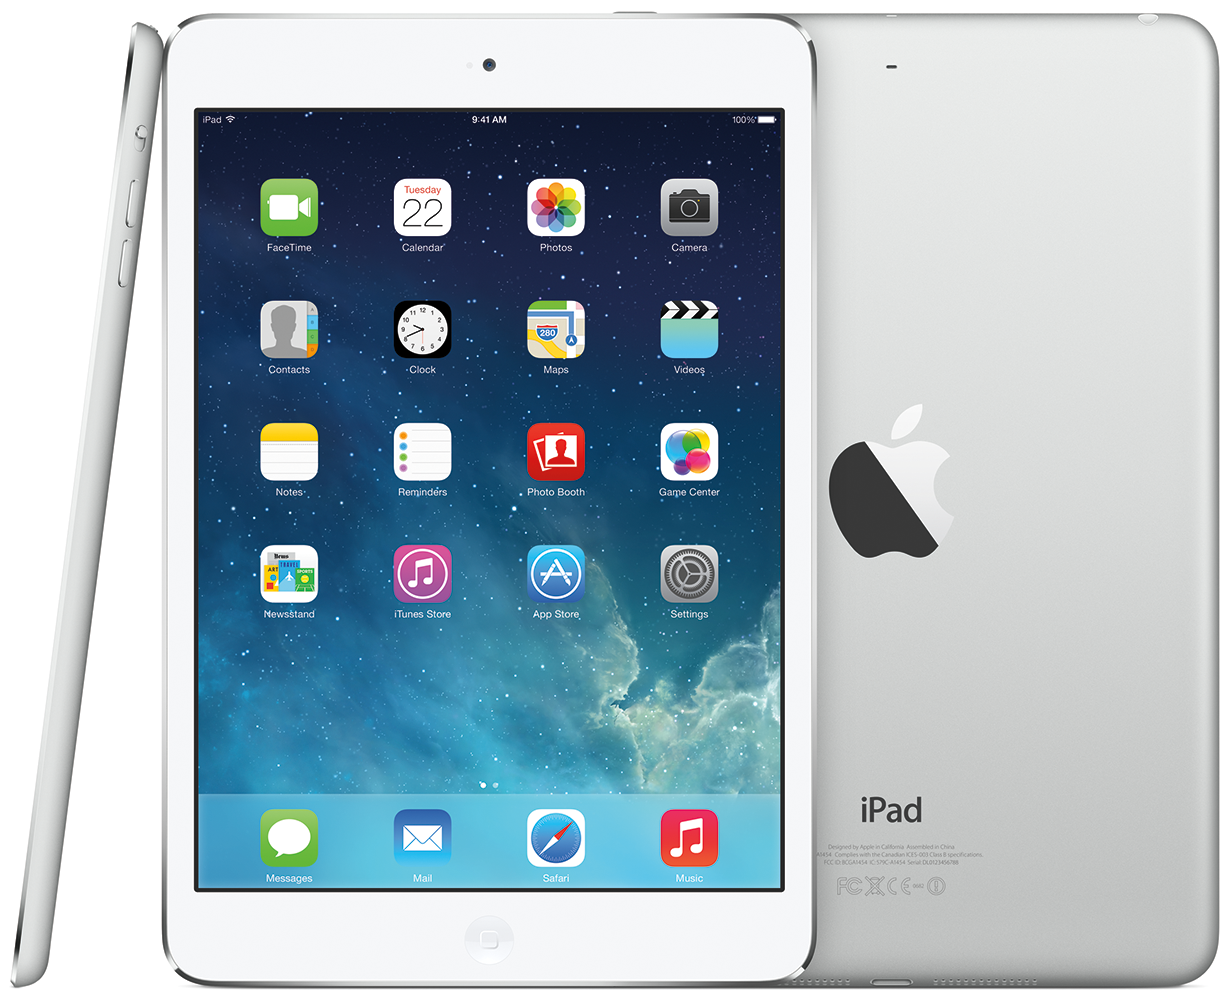 Apple iPad Mini 2 officially announced - Now with a Retina Display and powerful hardware